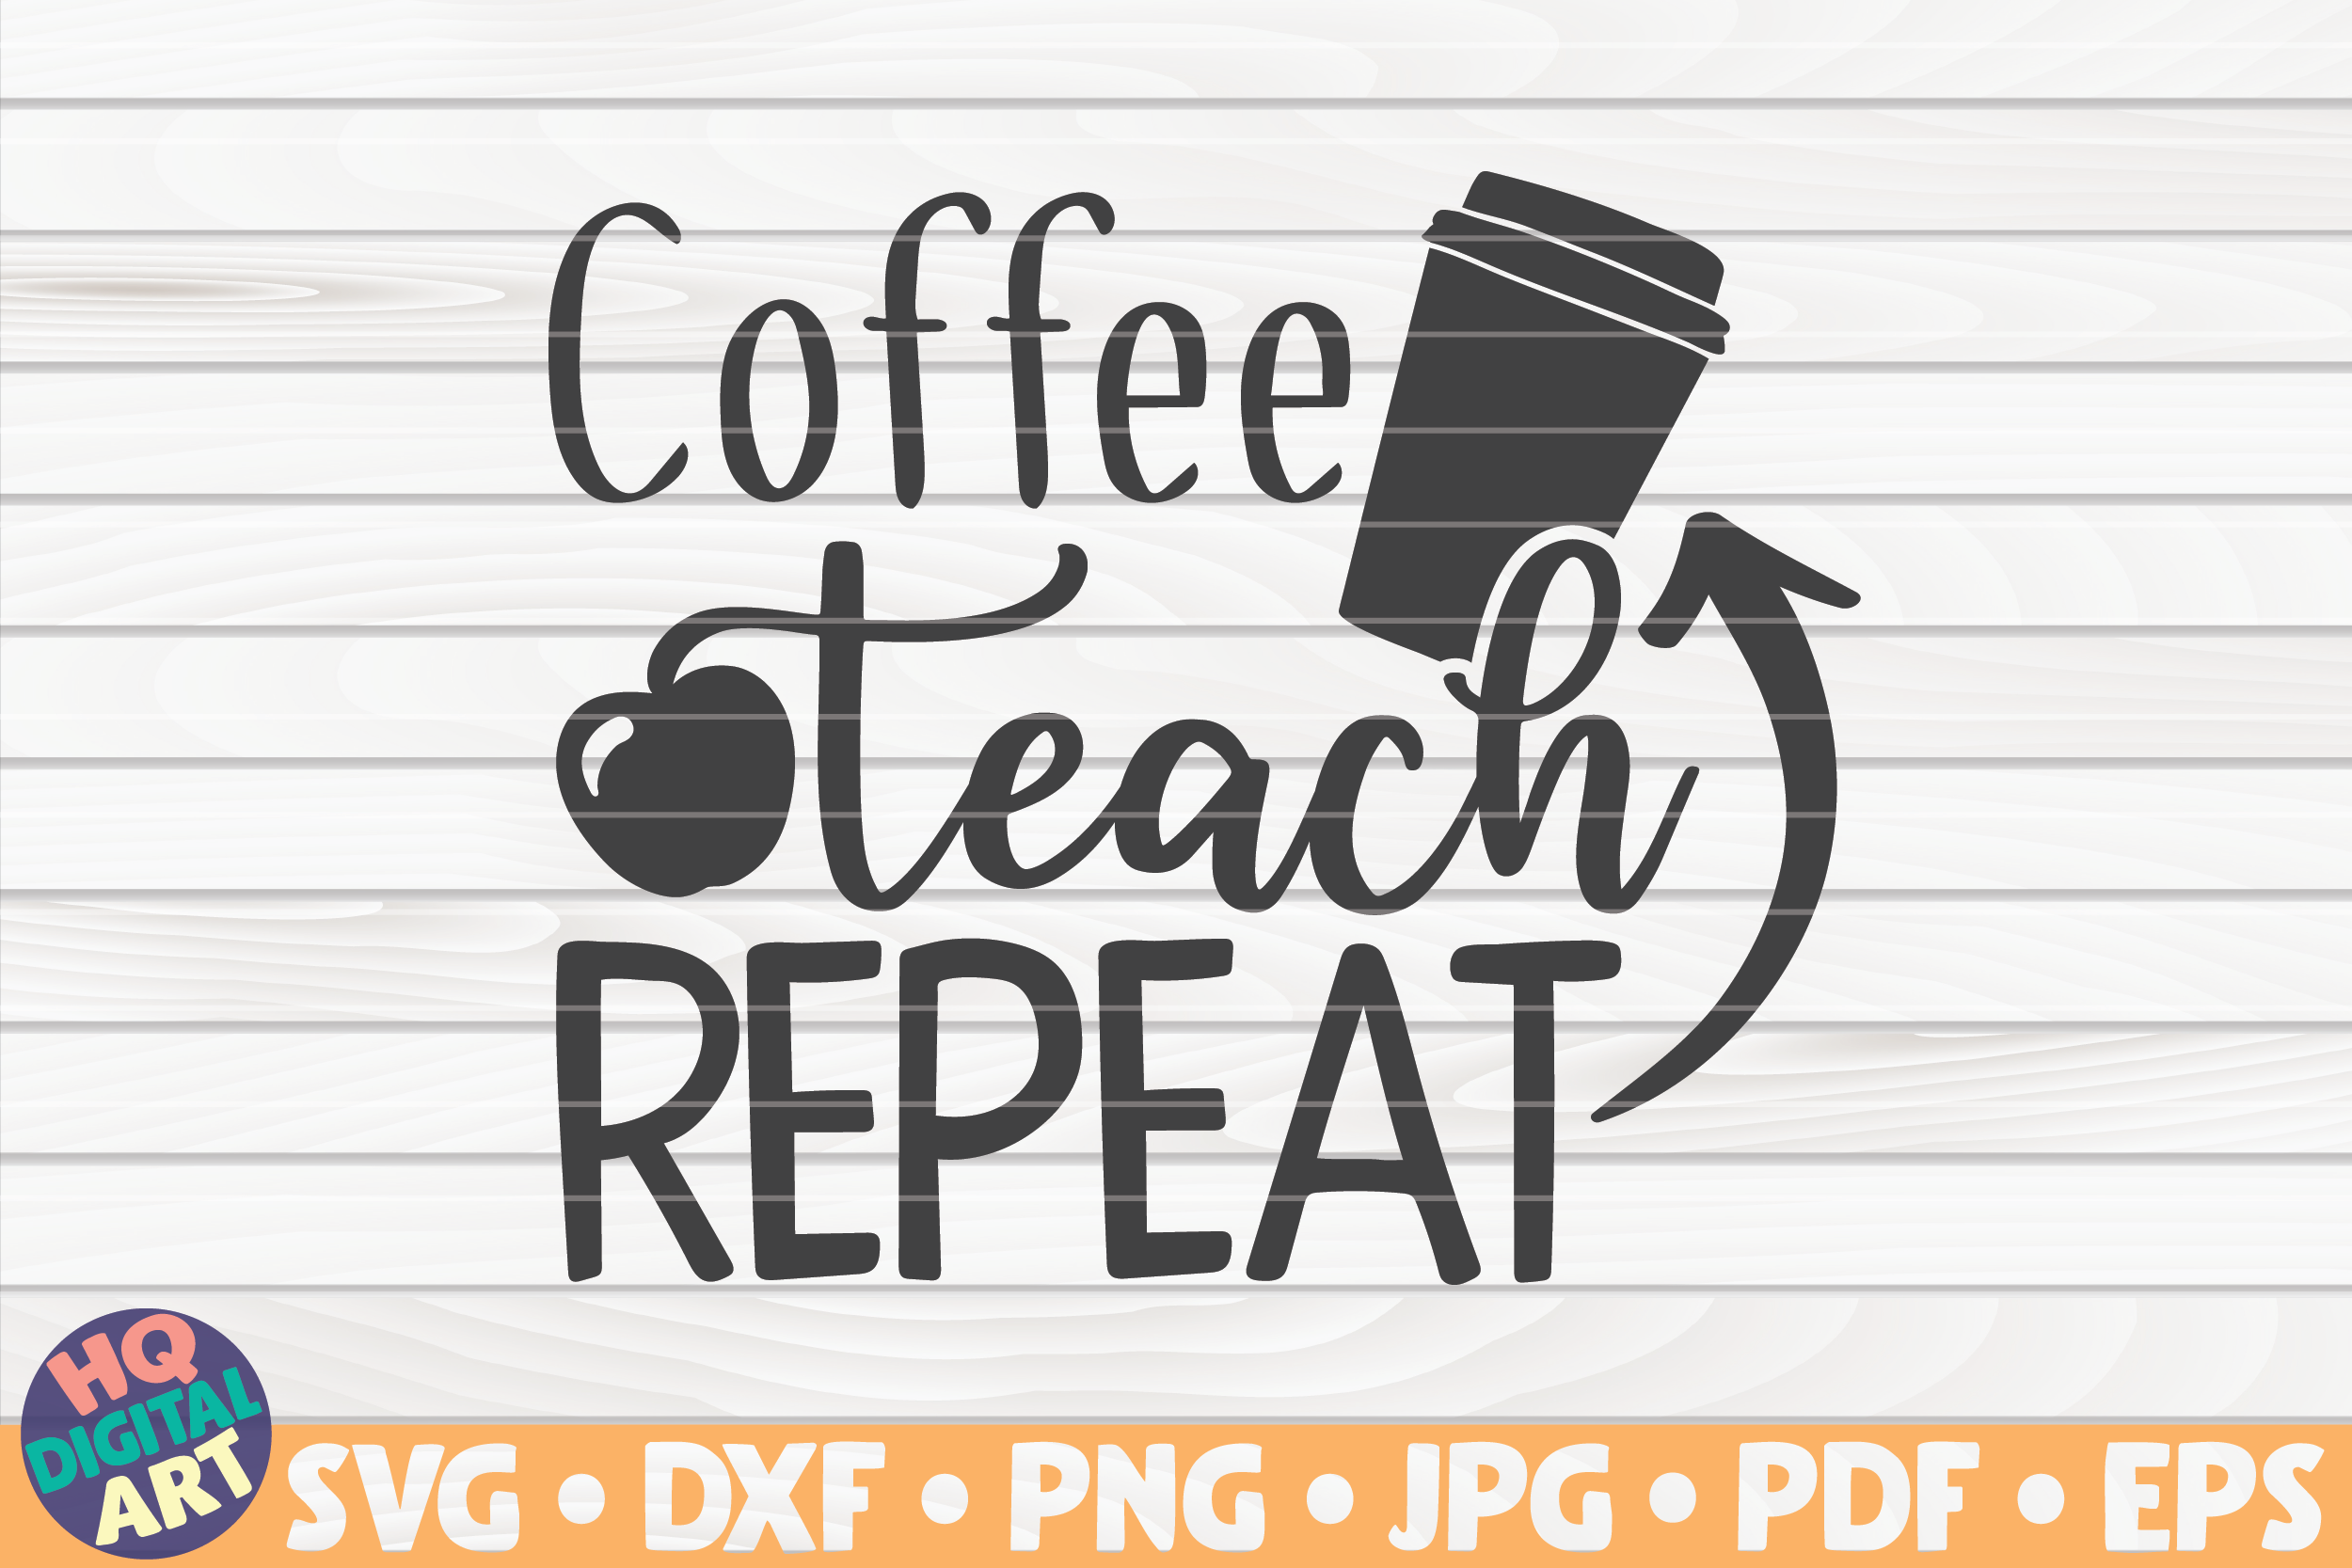 Download Free Coffee Teach Repeat Teacher Quote Graphic By Mihaibadea95 for Cricut Explore, Silhouette and other cutting machines.